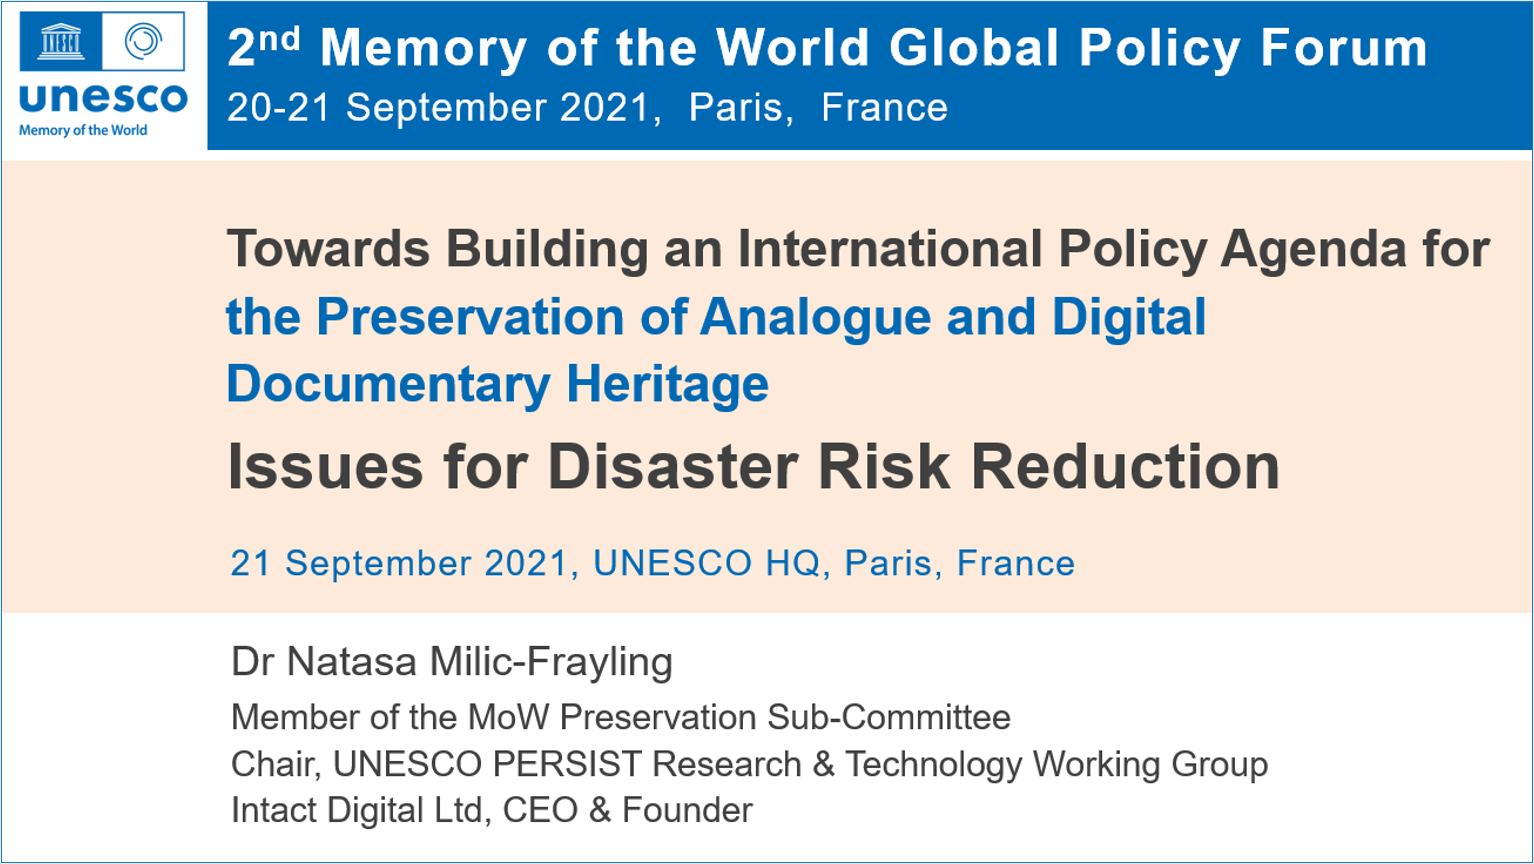 2nd Memory of the World Global Policy Forum: Towards Building an International Policy Agenda for the Preservation of Analogue and Digital Documentary Heritage: Issues for Disaster Risk Reduction Slides